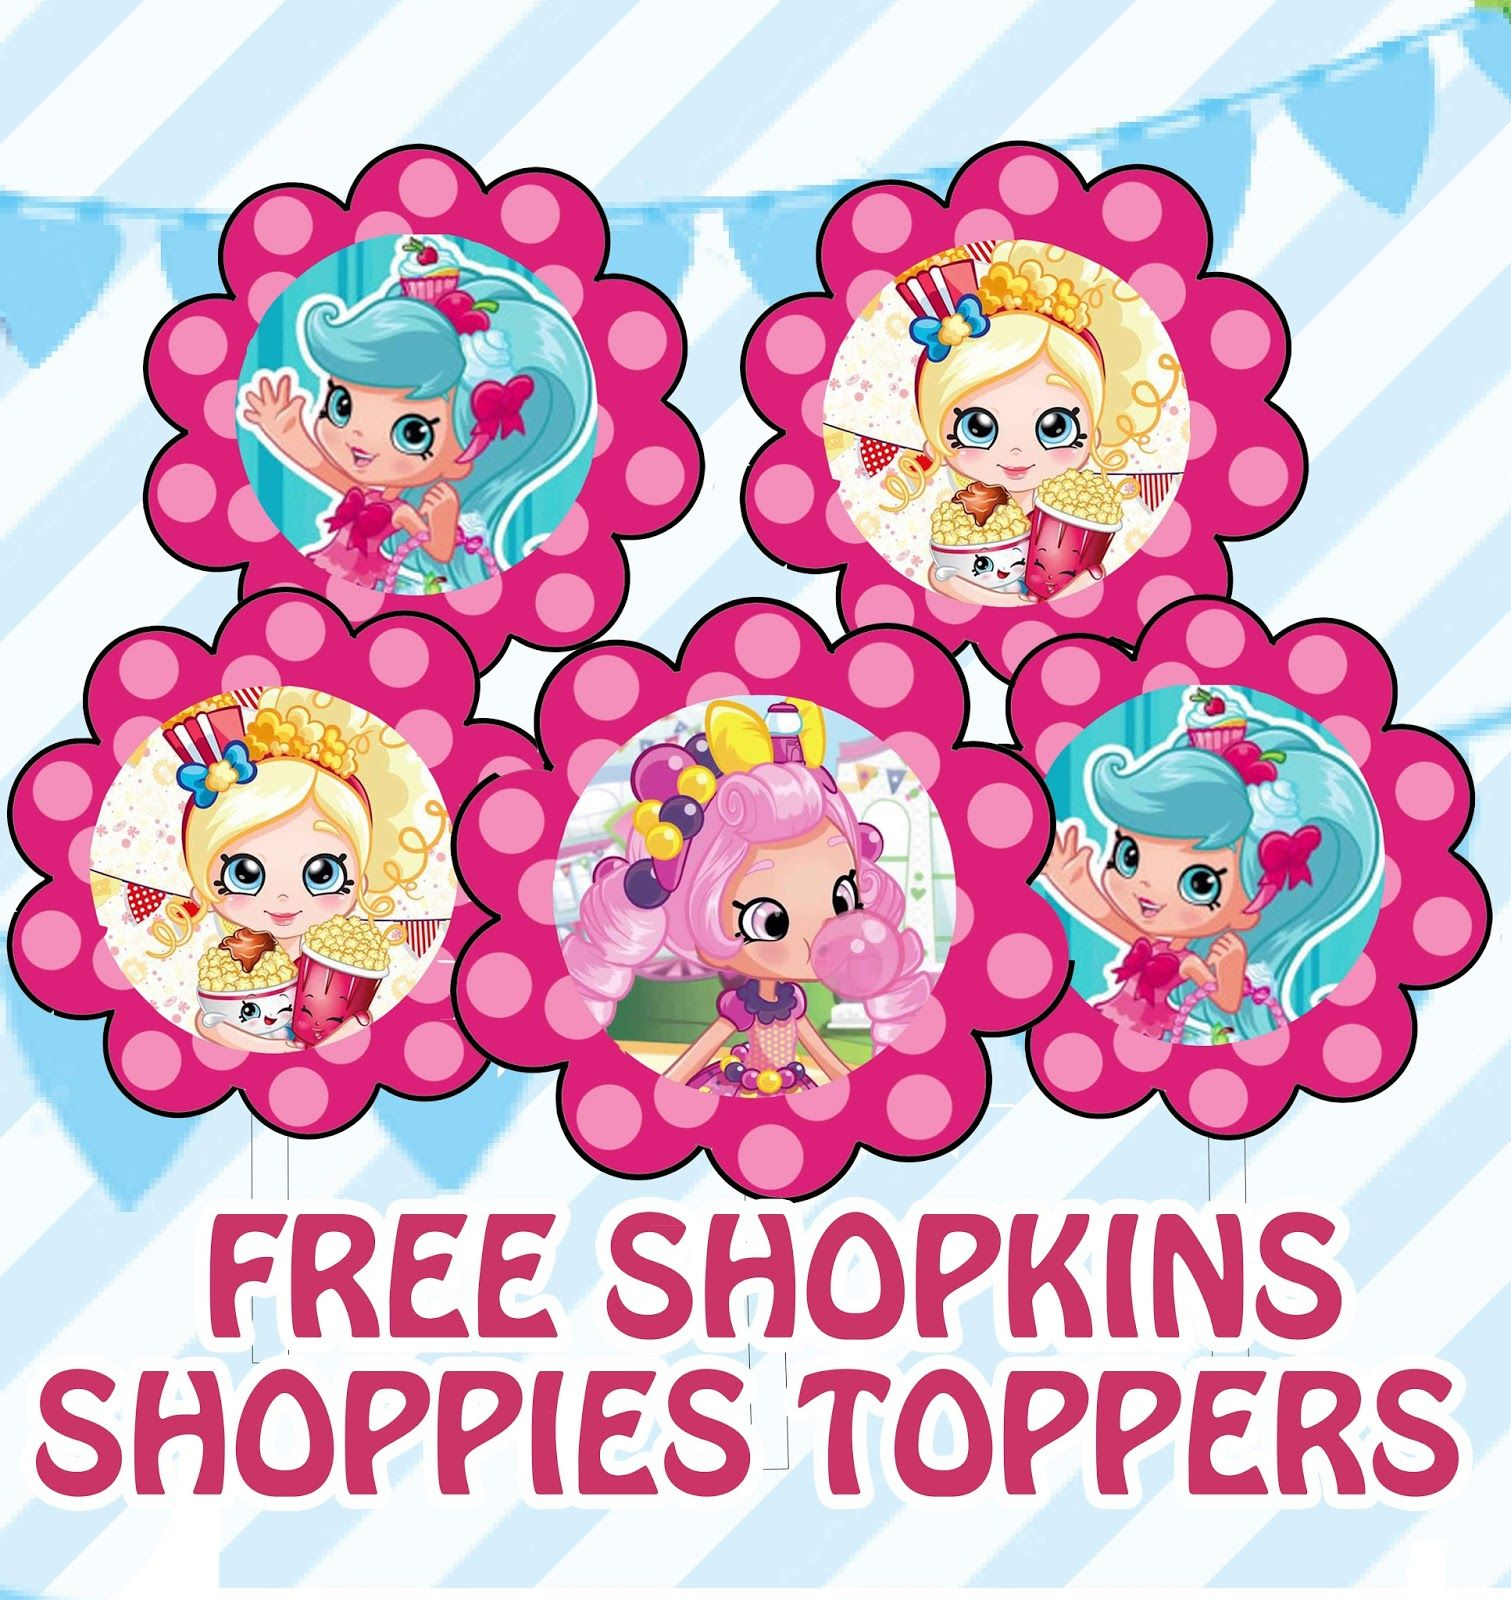 FREE Shopkins Shoppies Birthday Party Printables